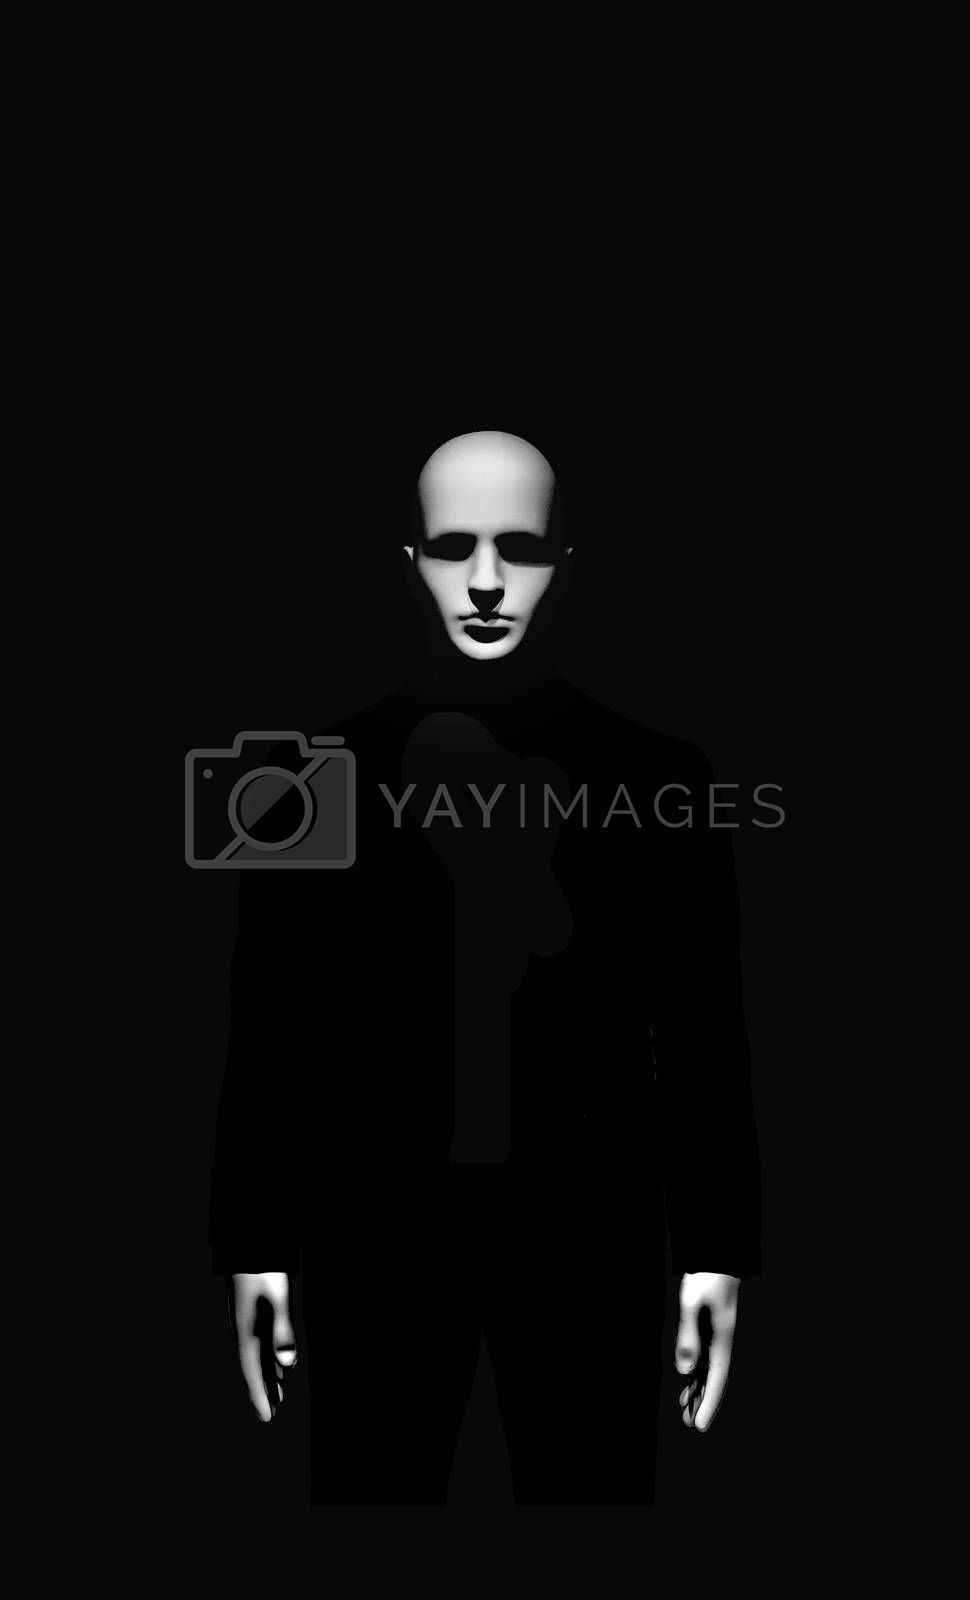 Minimal black style high constrat scary man portrait artwork in black and white colors